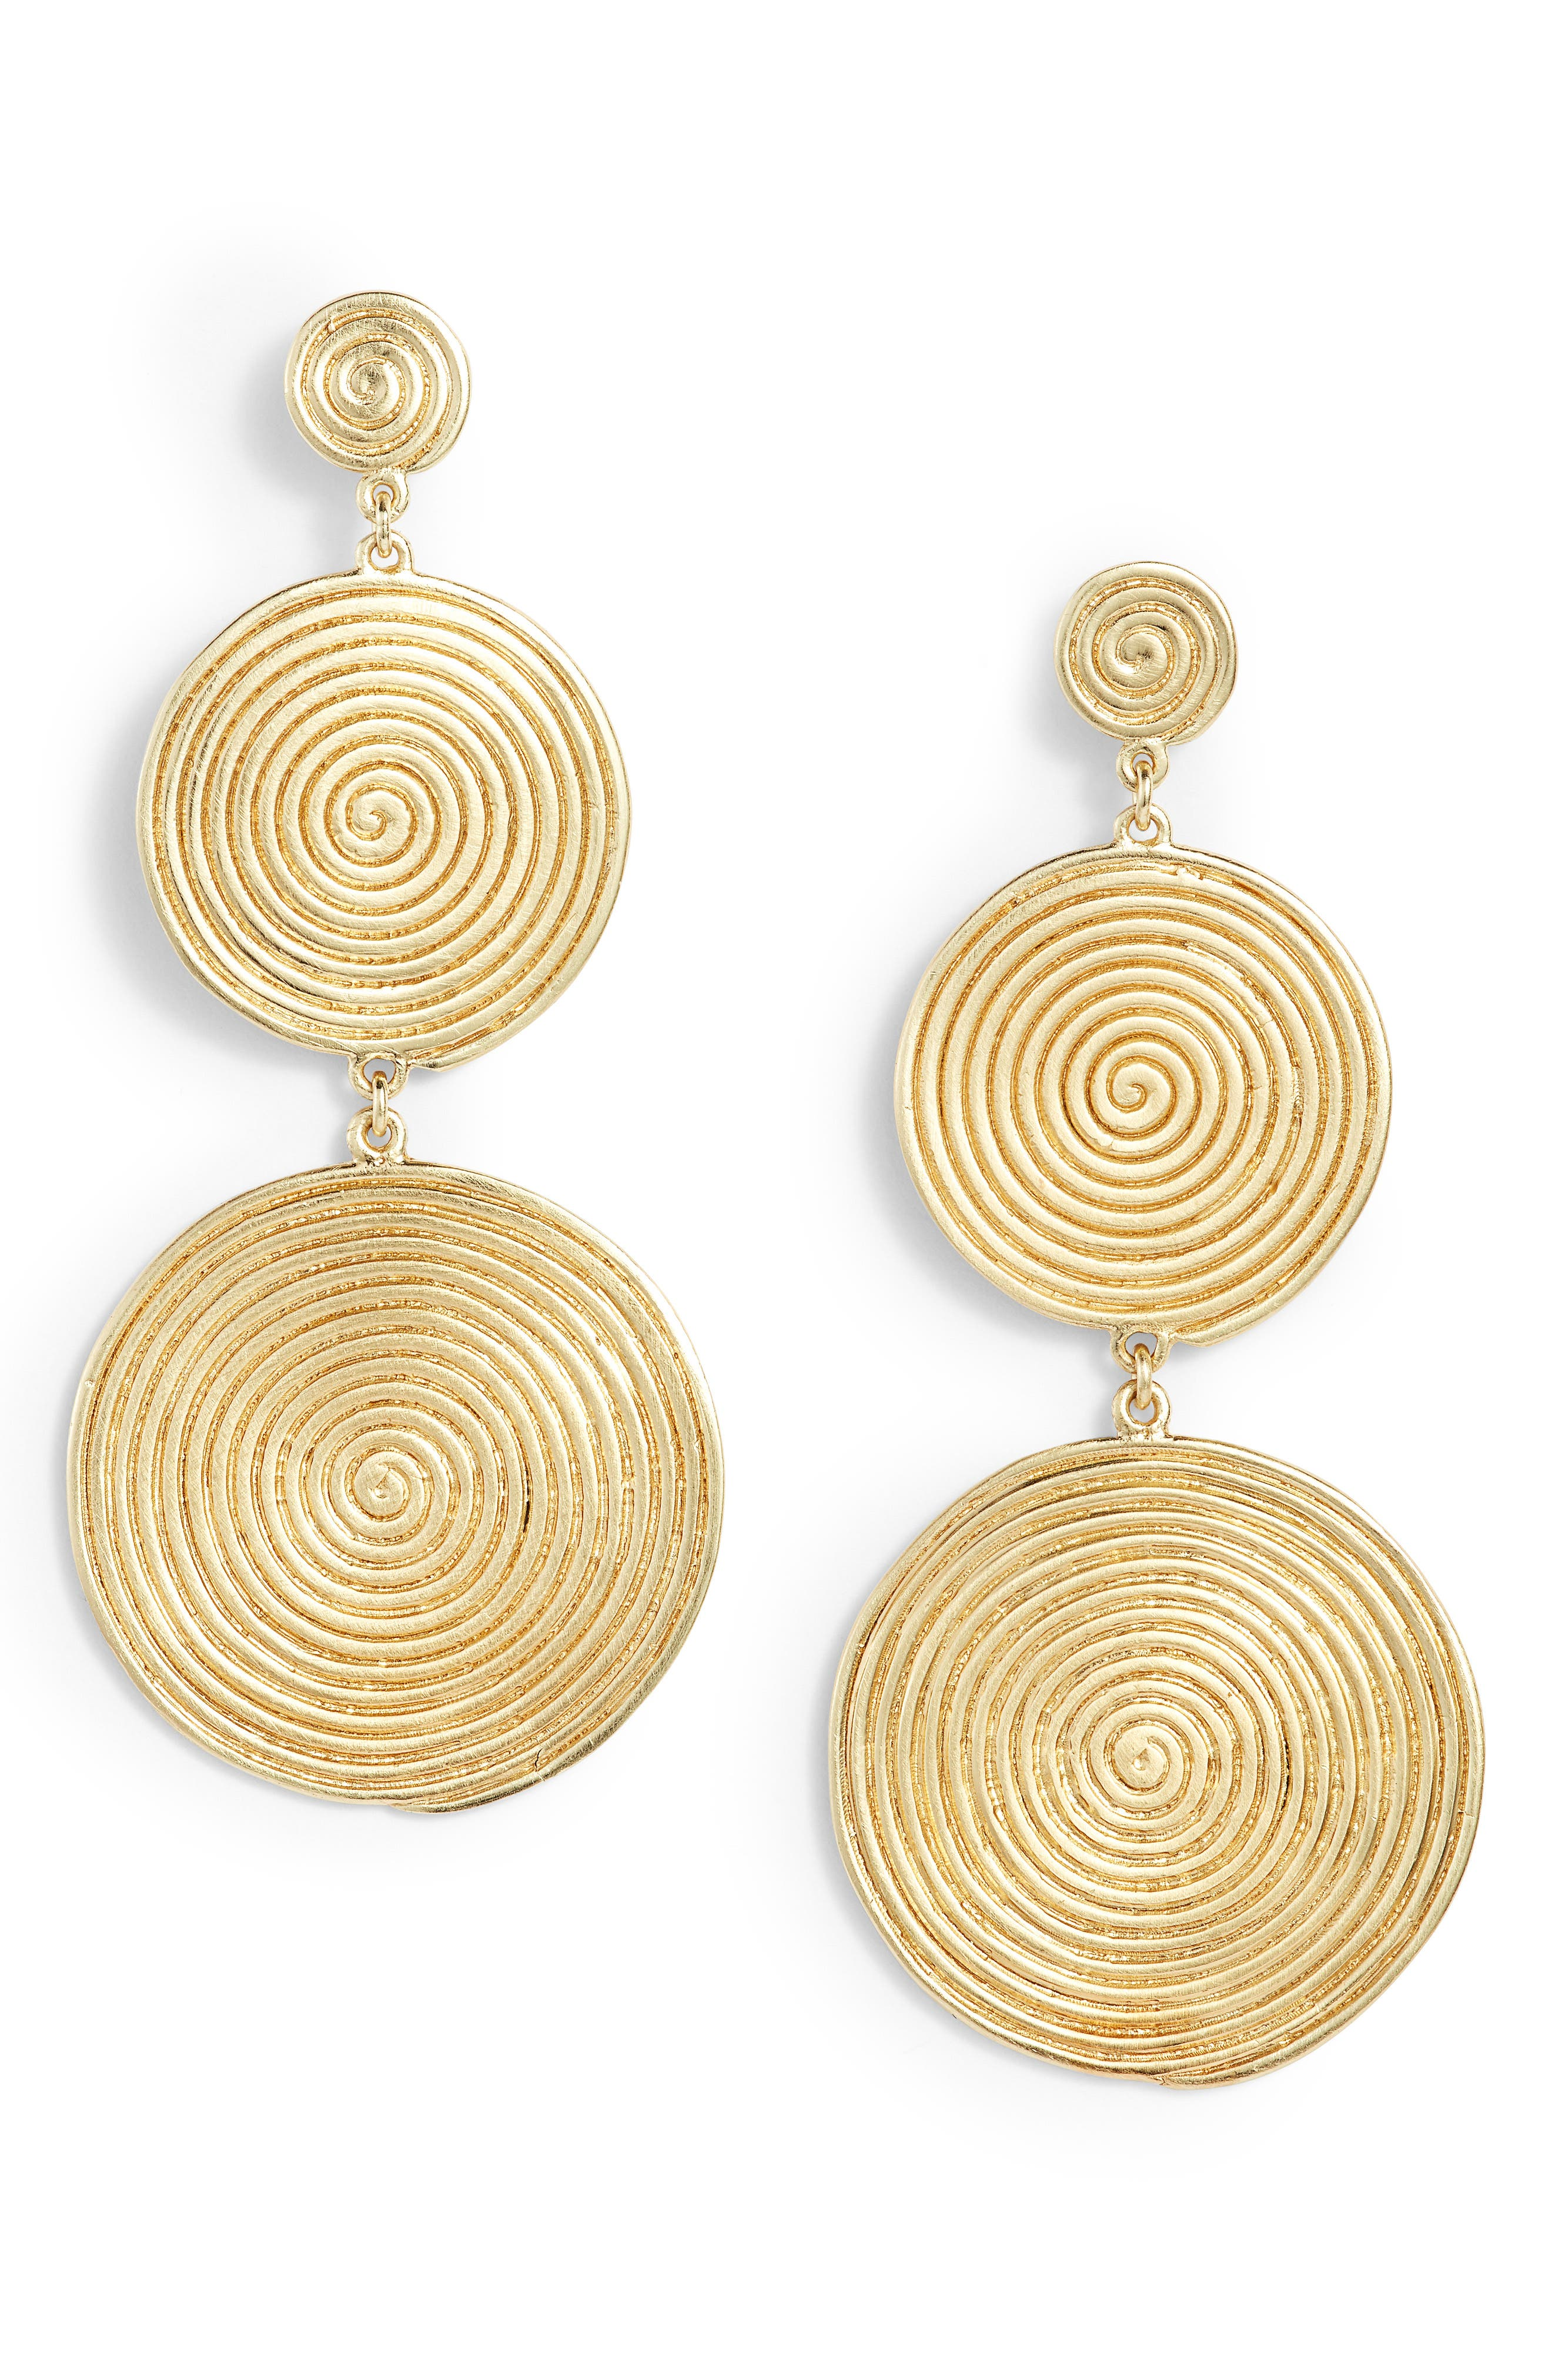 Sullivan - Lorelai Drop Earrings,                             Main thumbnail 1, color,                             Yellow Gold